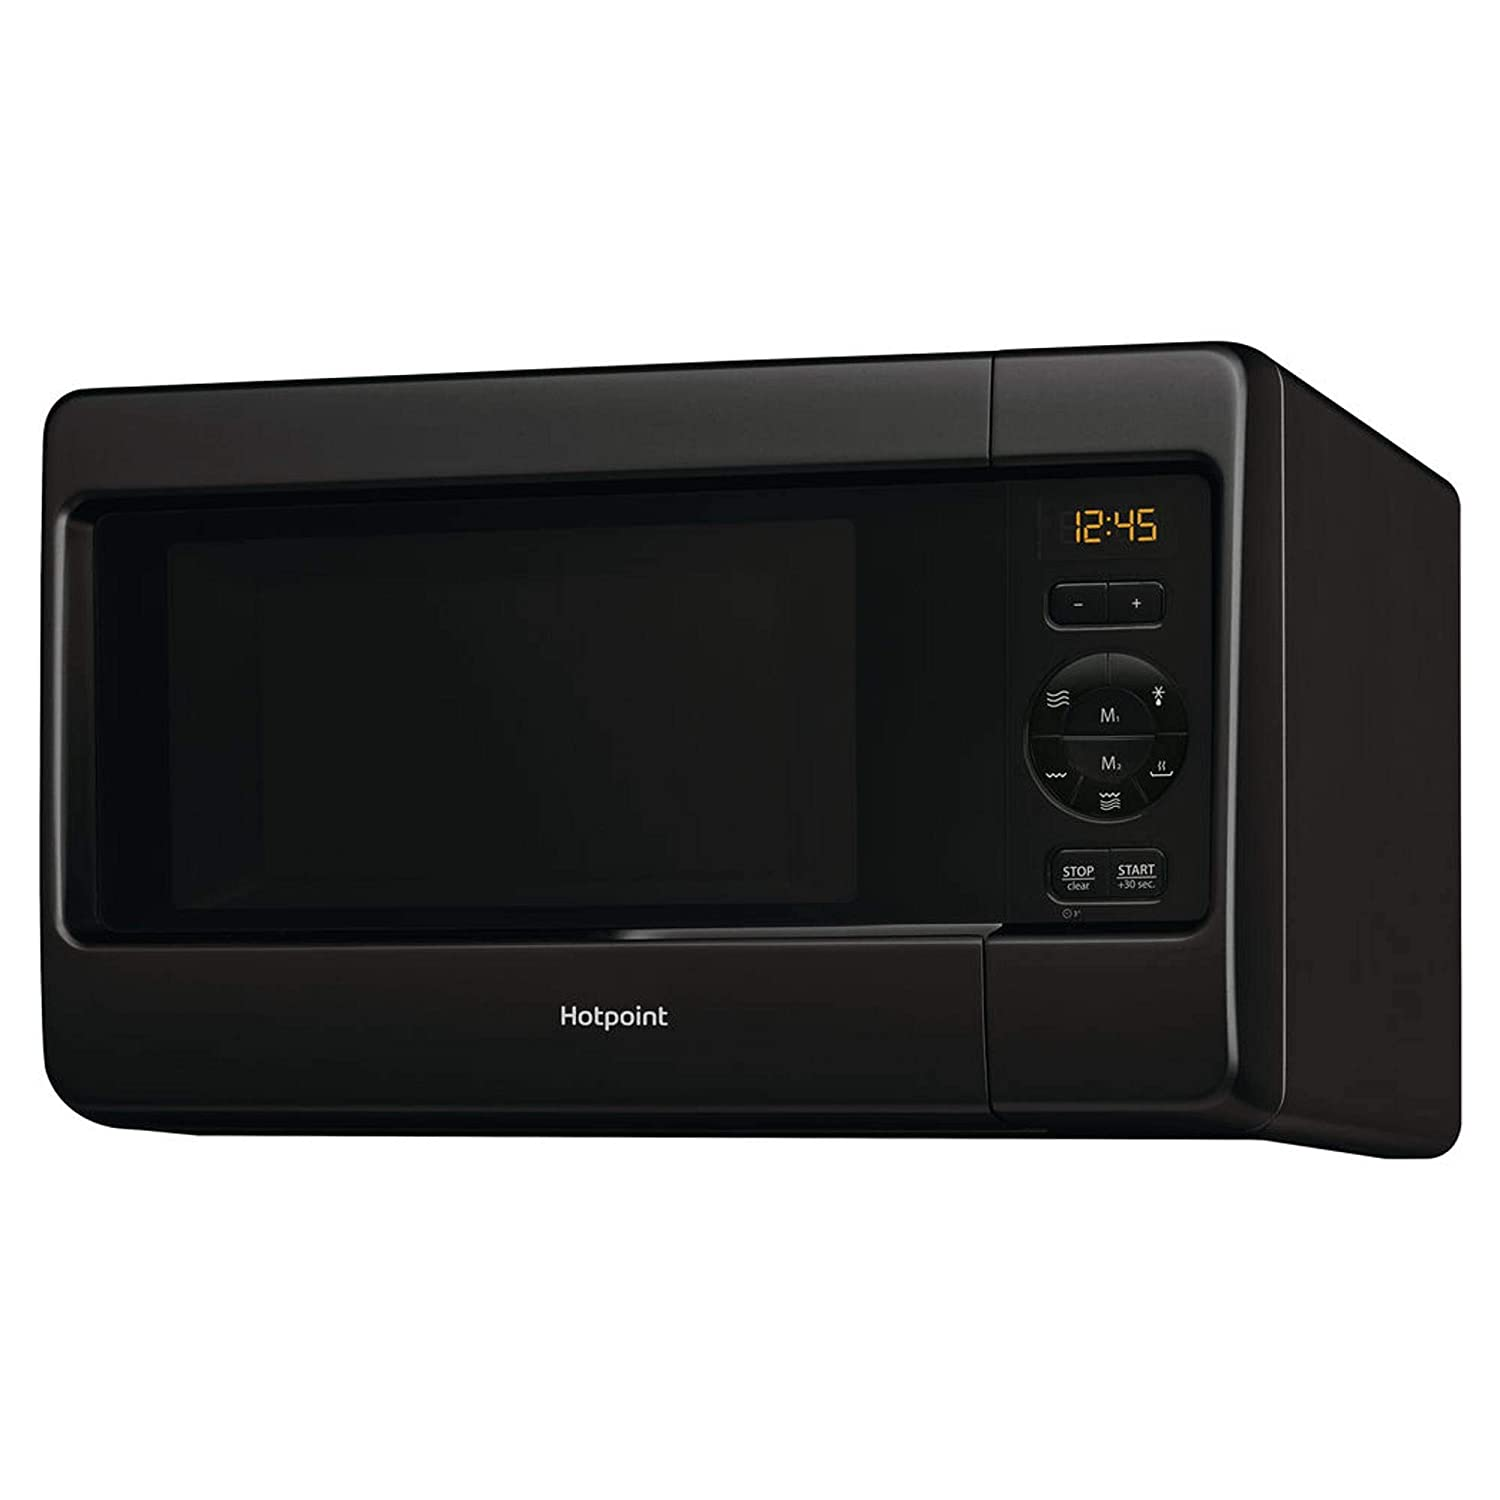 Hotpoint MWH2422MB 24L 750W Freestanding Microwave with Grill in Black